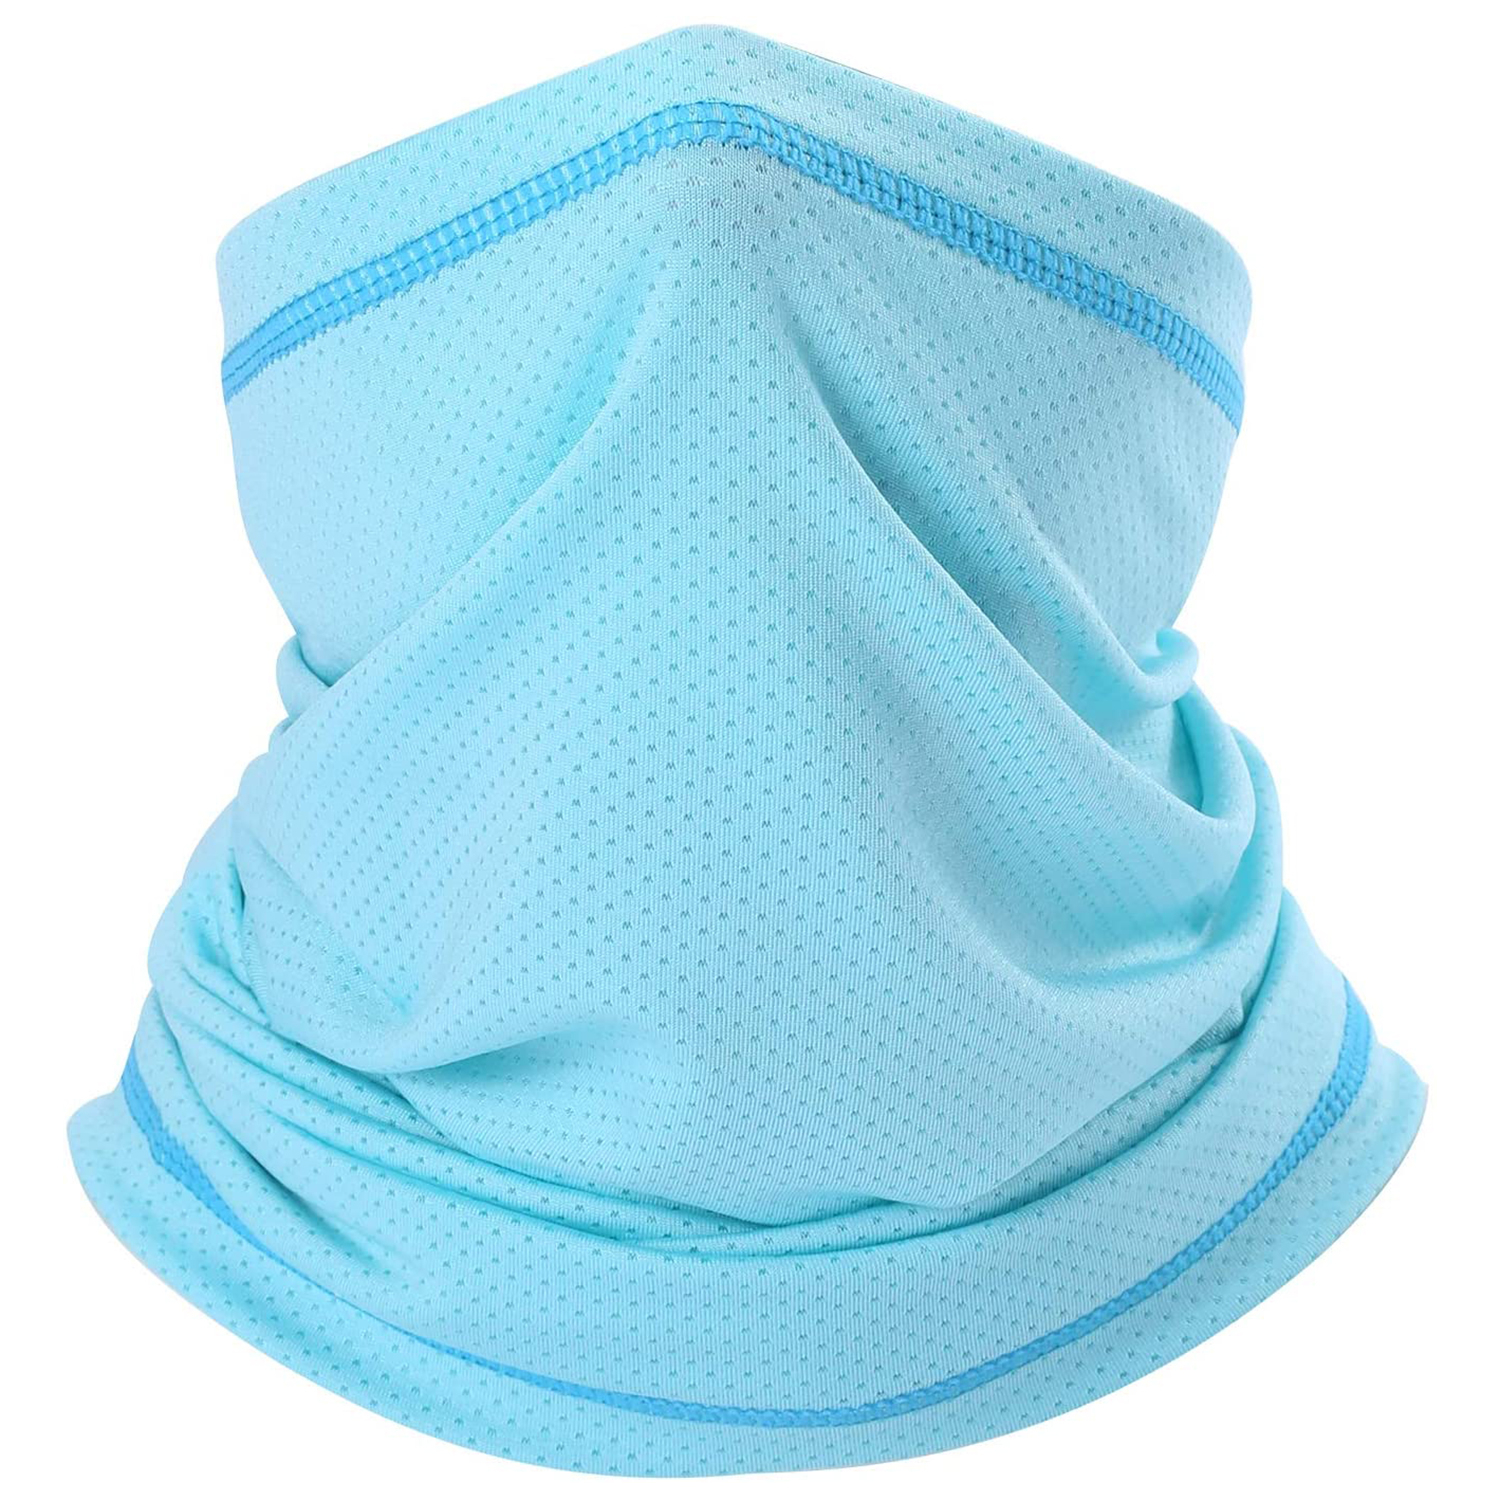 SUNMECI Summer Neck Gaiter Elastic Sun Protection Face Mouth Cover Breathable Headwrap for Fishing Motorcycle Cycling